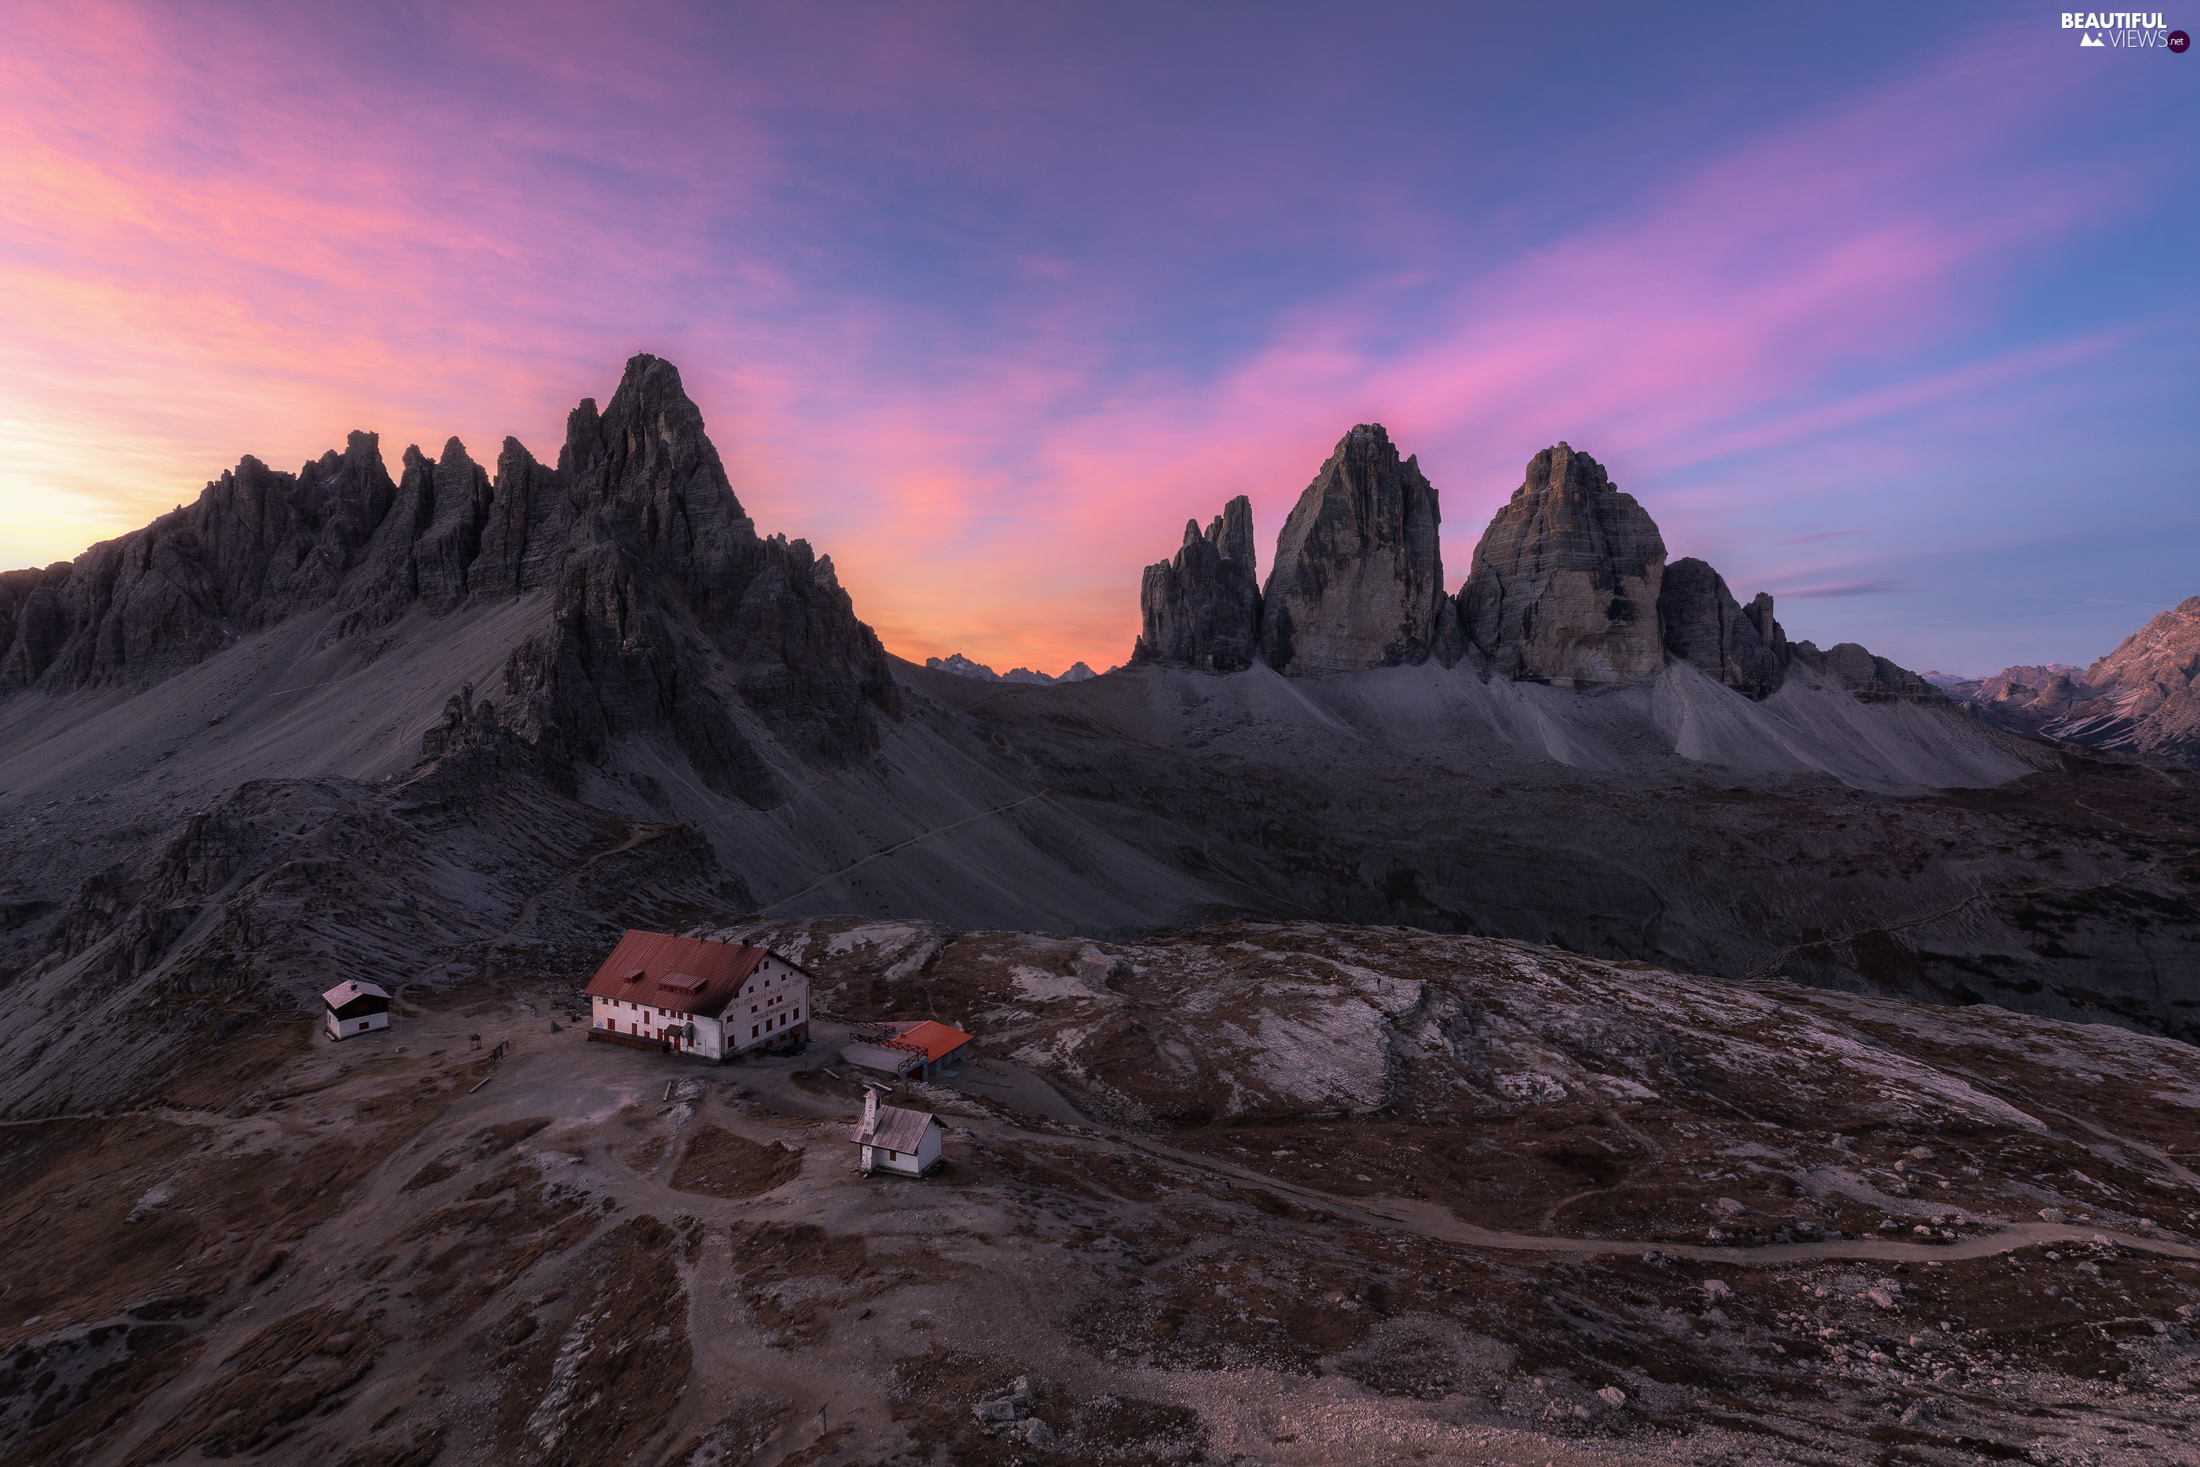 Valley, Tre Cime di Lavaredo, Province of Belluno, Houses, Dolomites Mountains, Great Sunsets, Italy